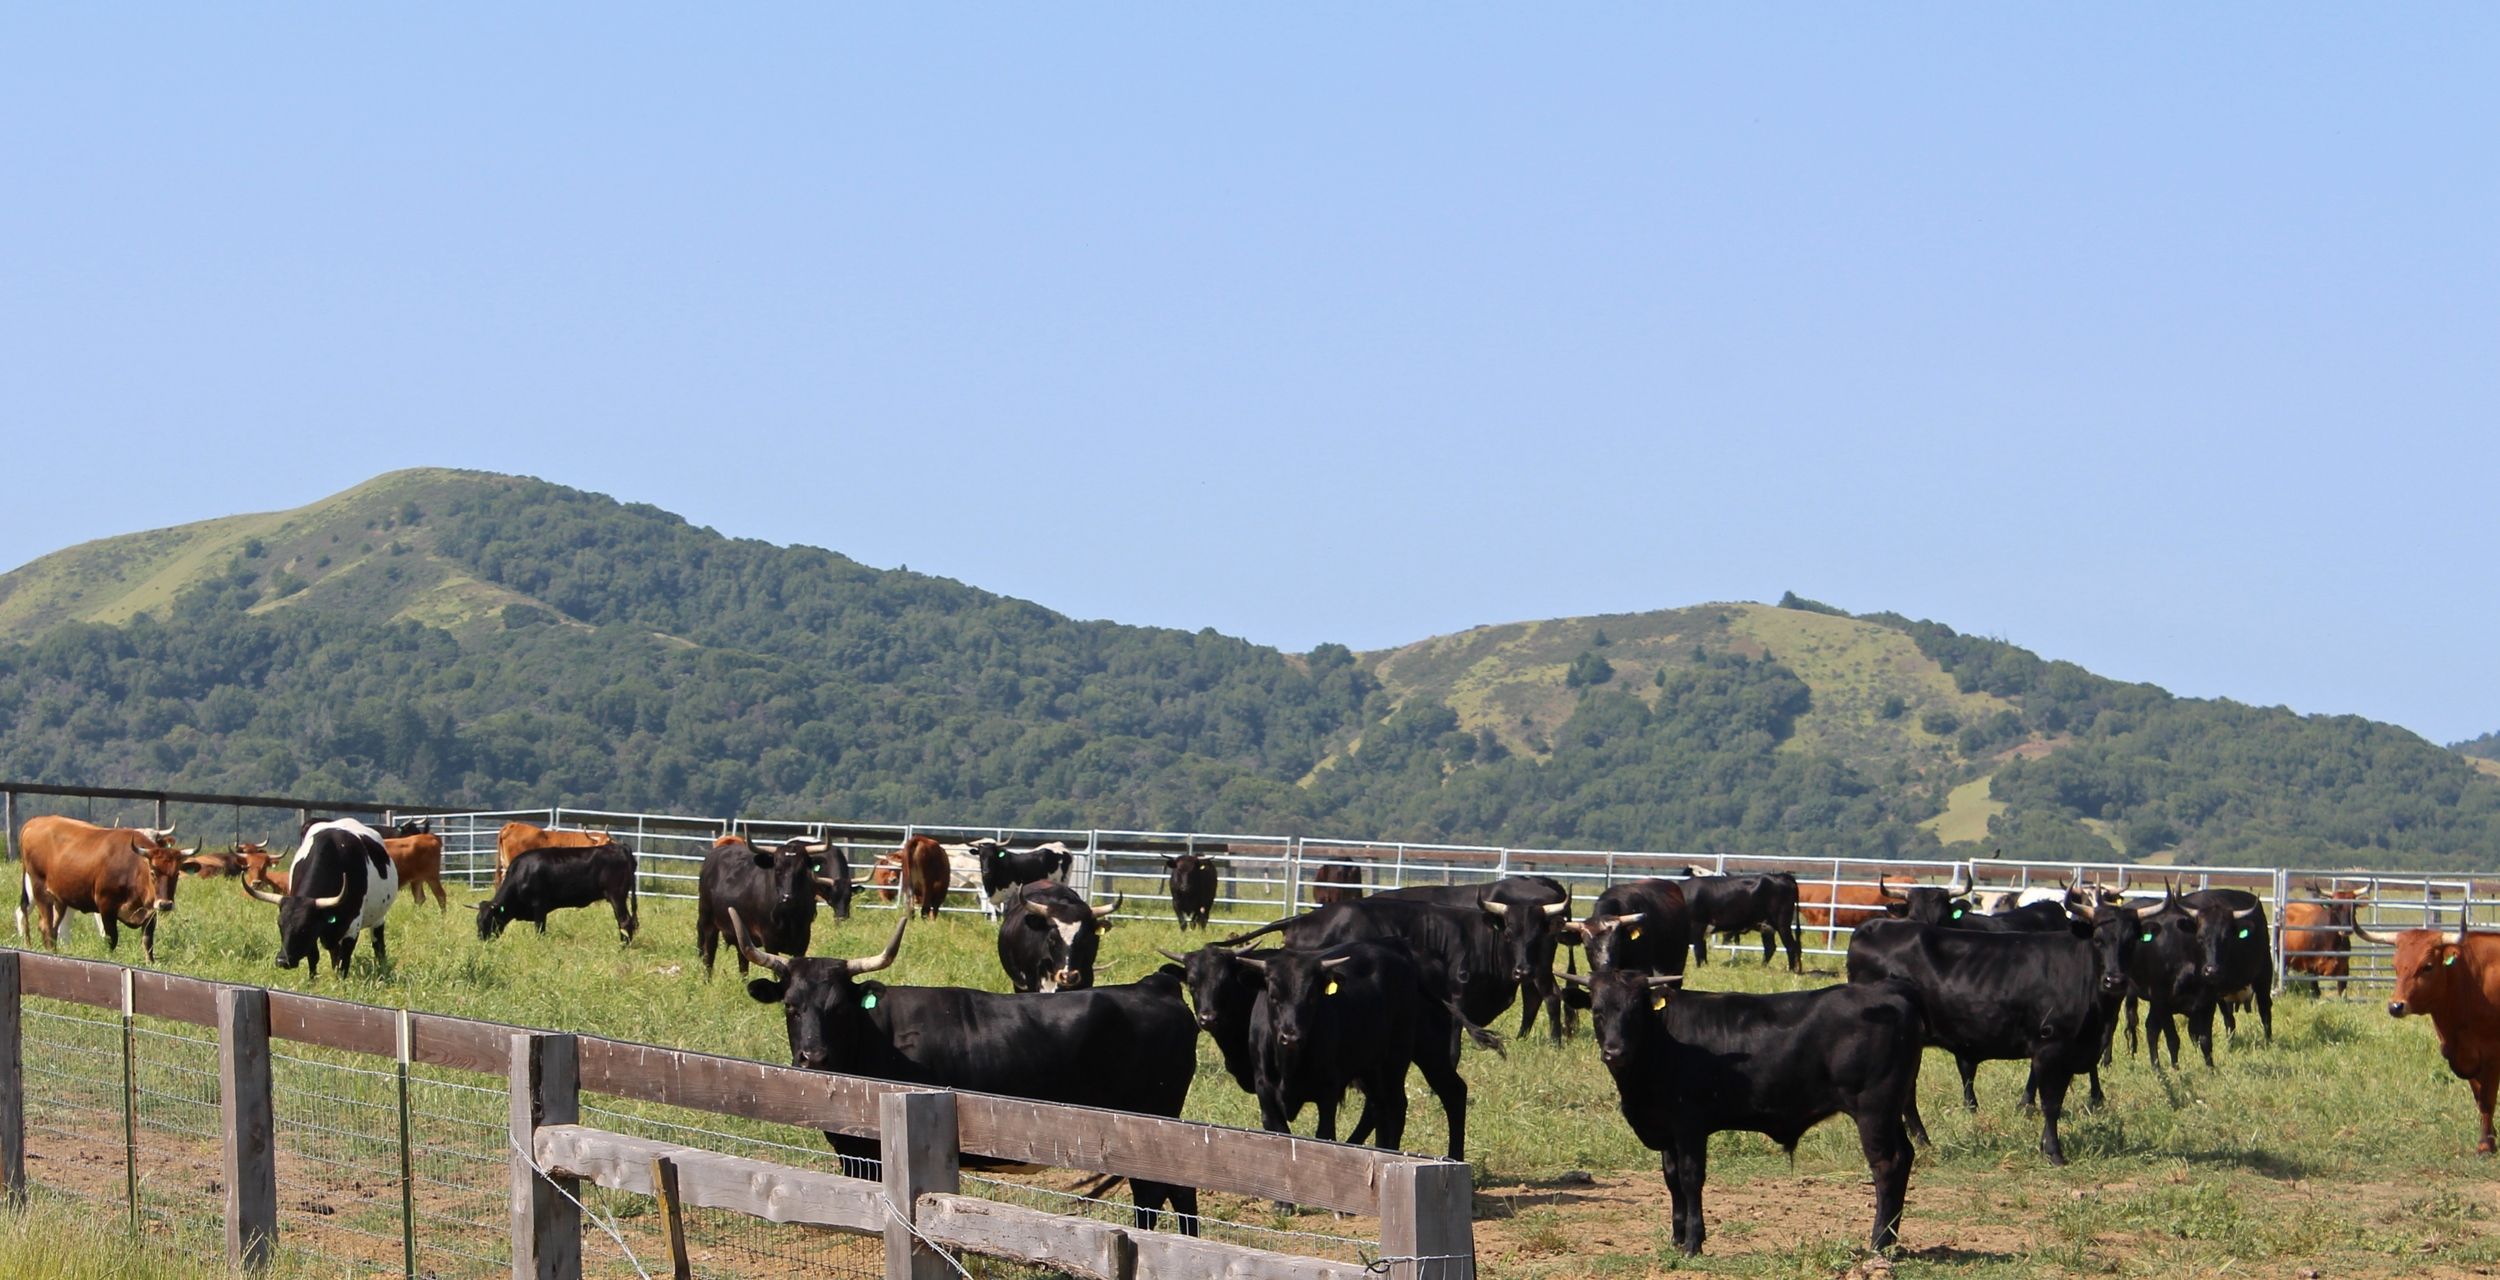 Cows in the corral